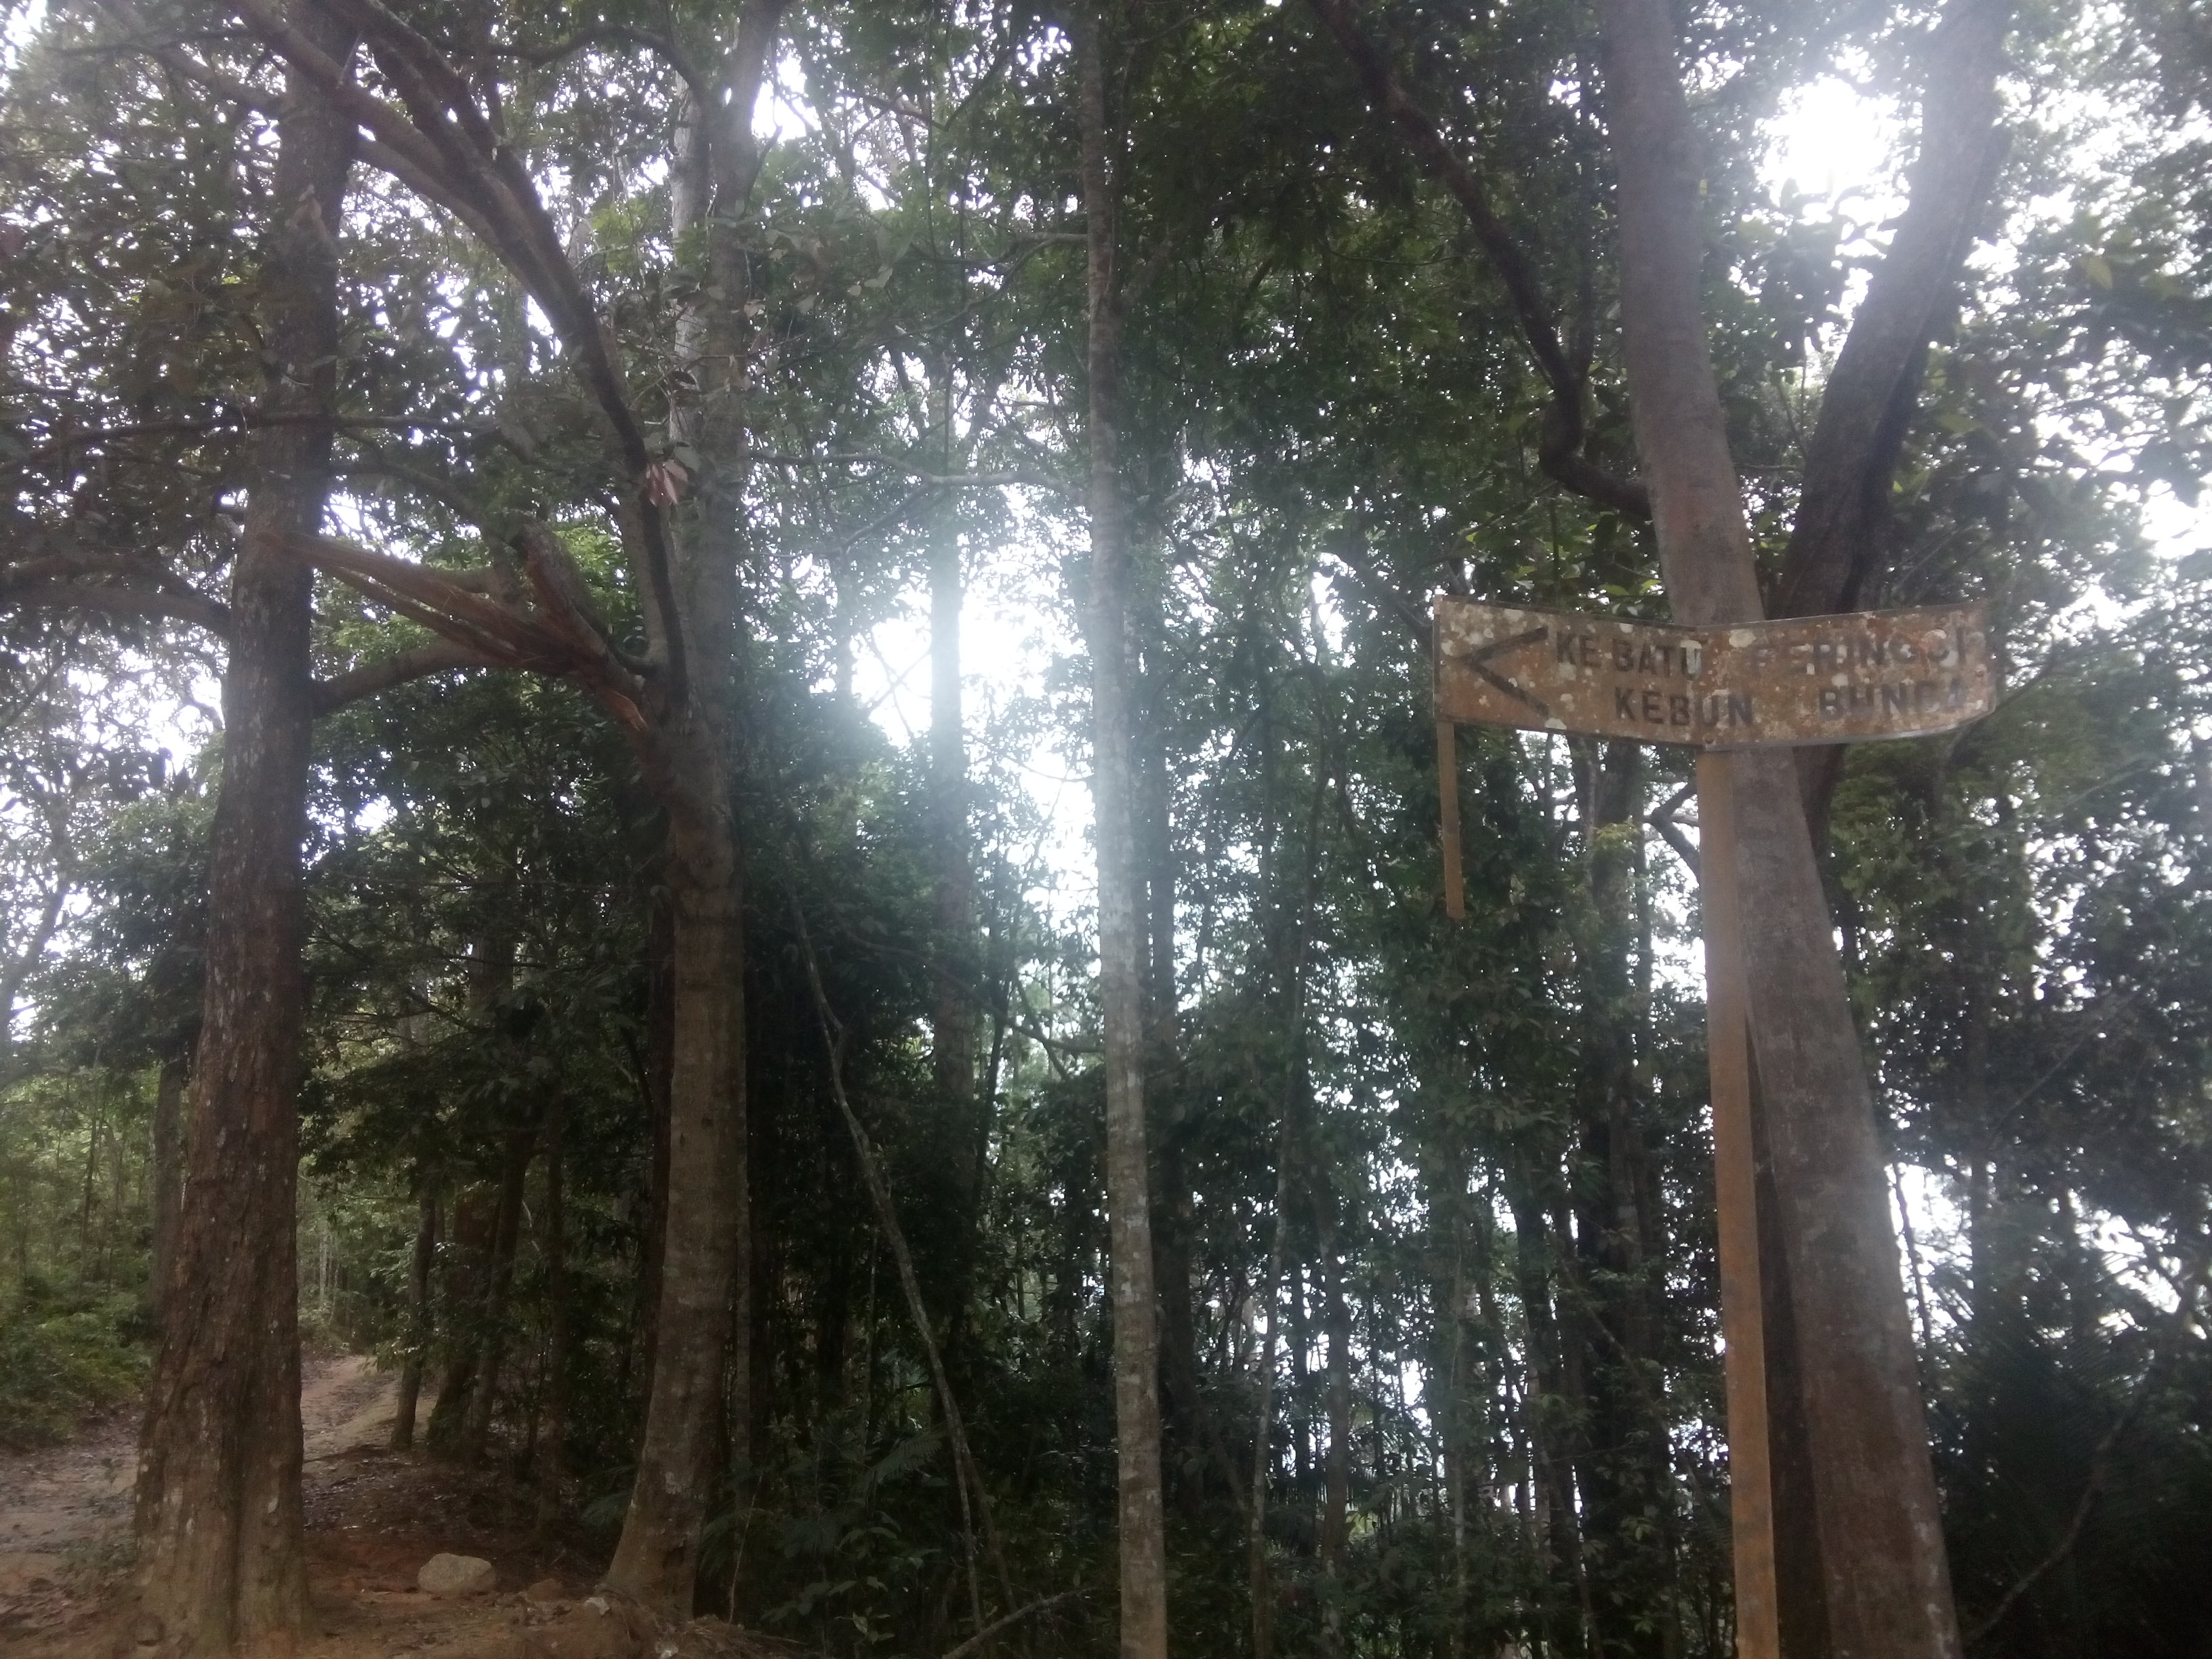 A metal sign on a wooden post with trees behind